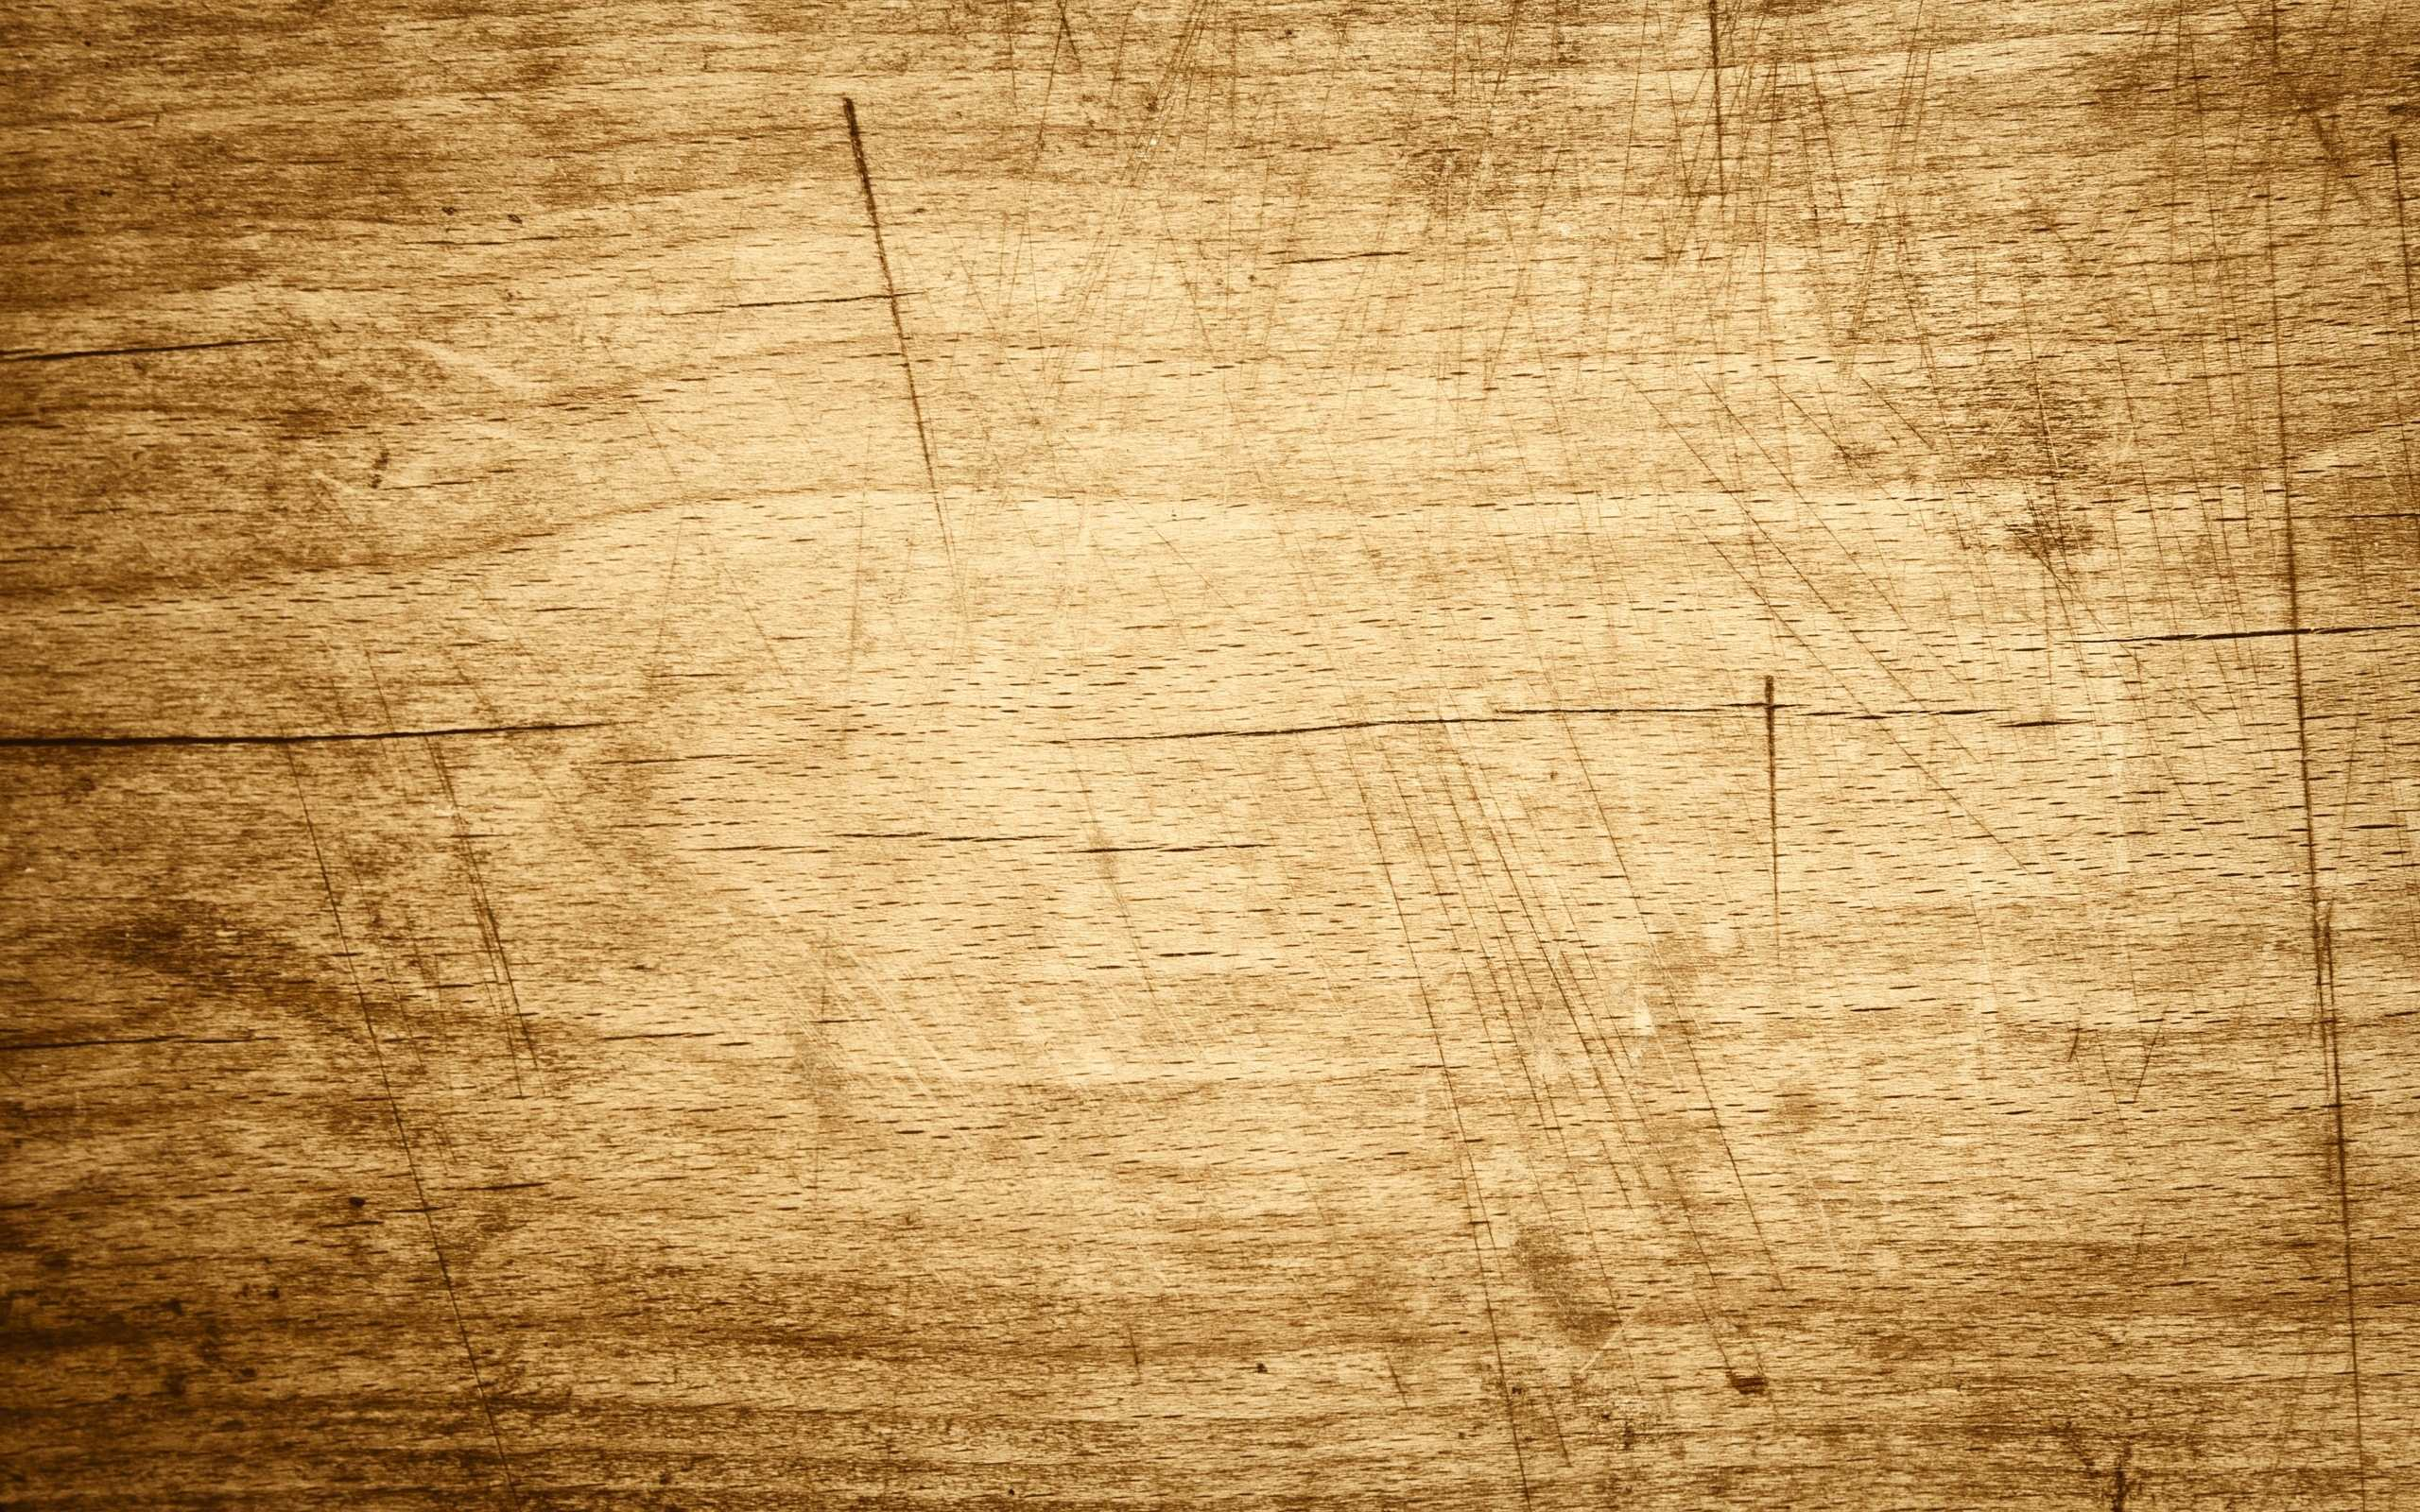 Light Rustic Wood Background Images & Pictures  Becuo